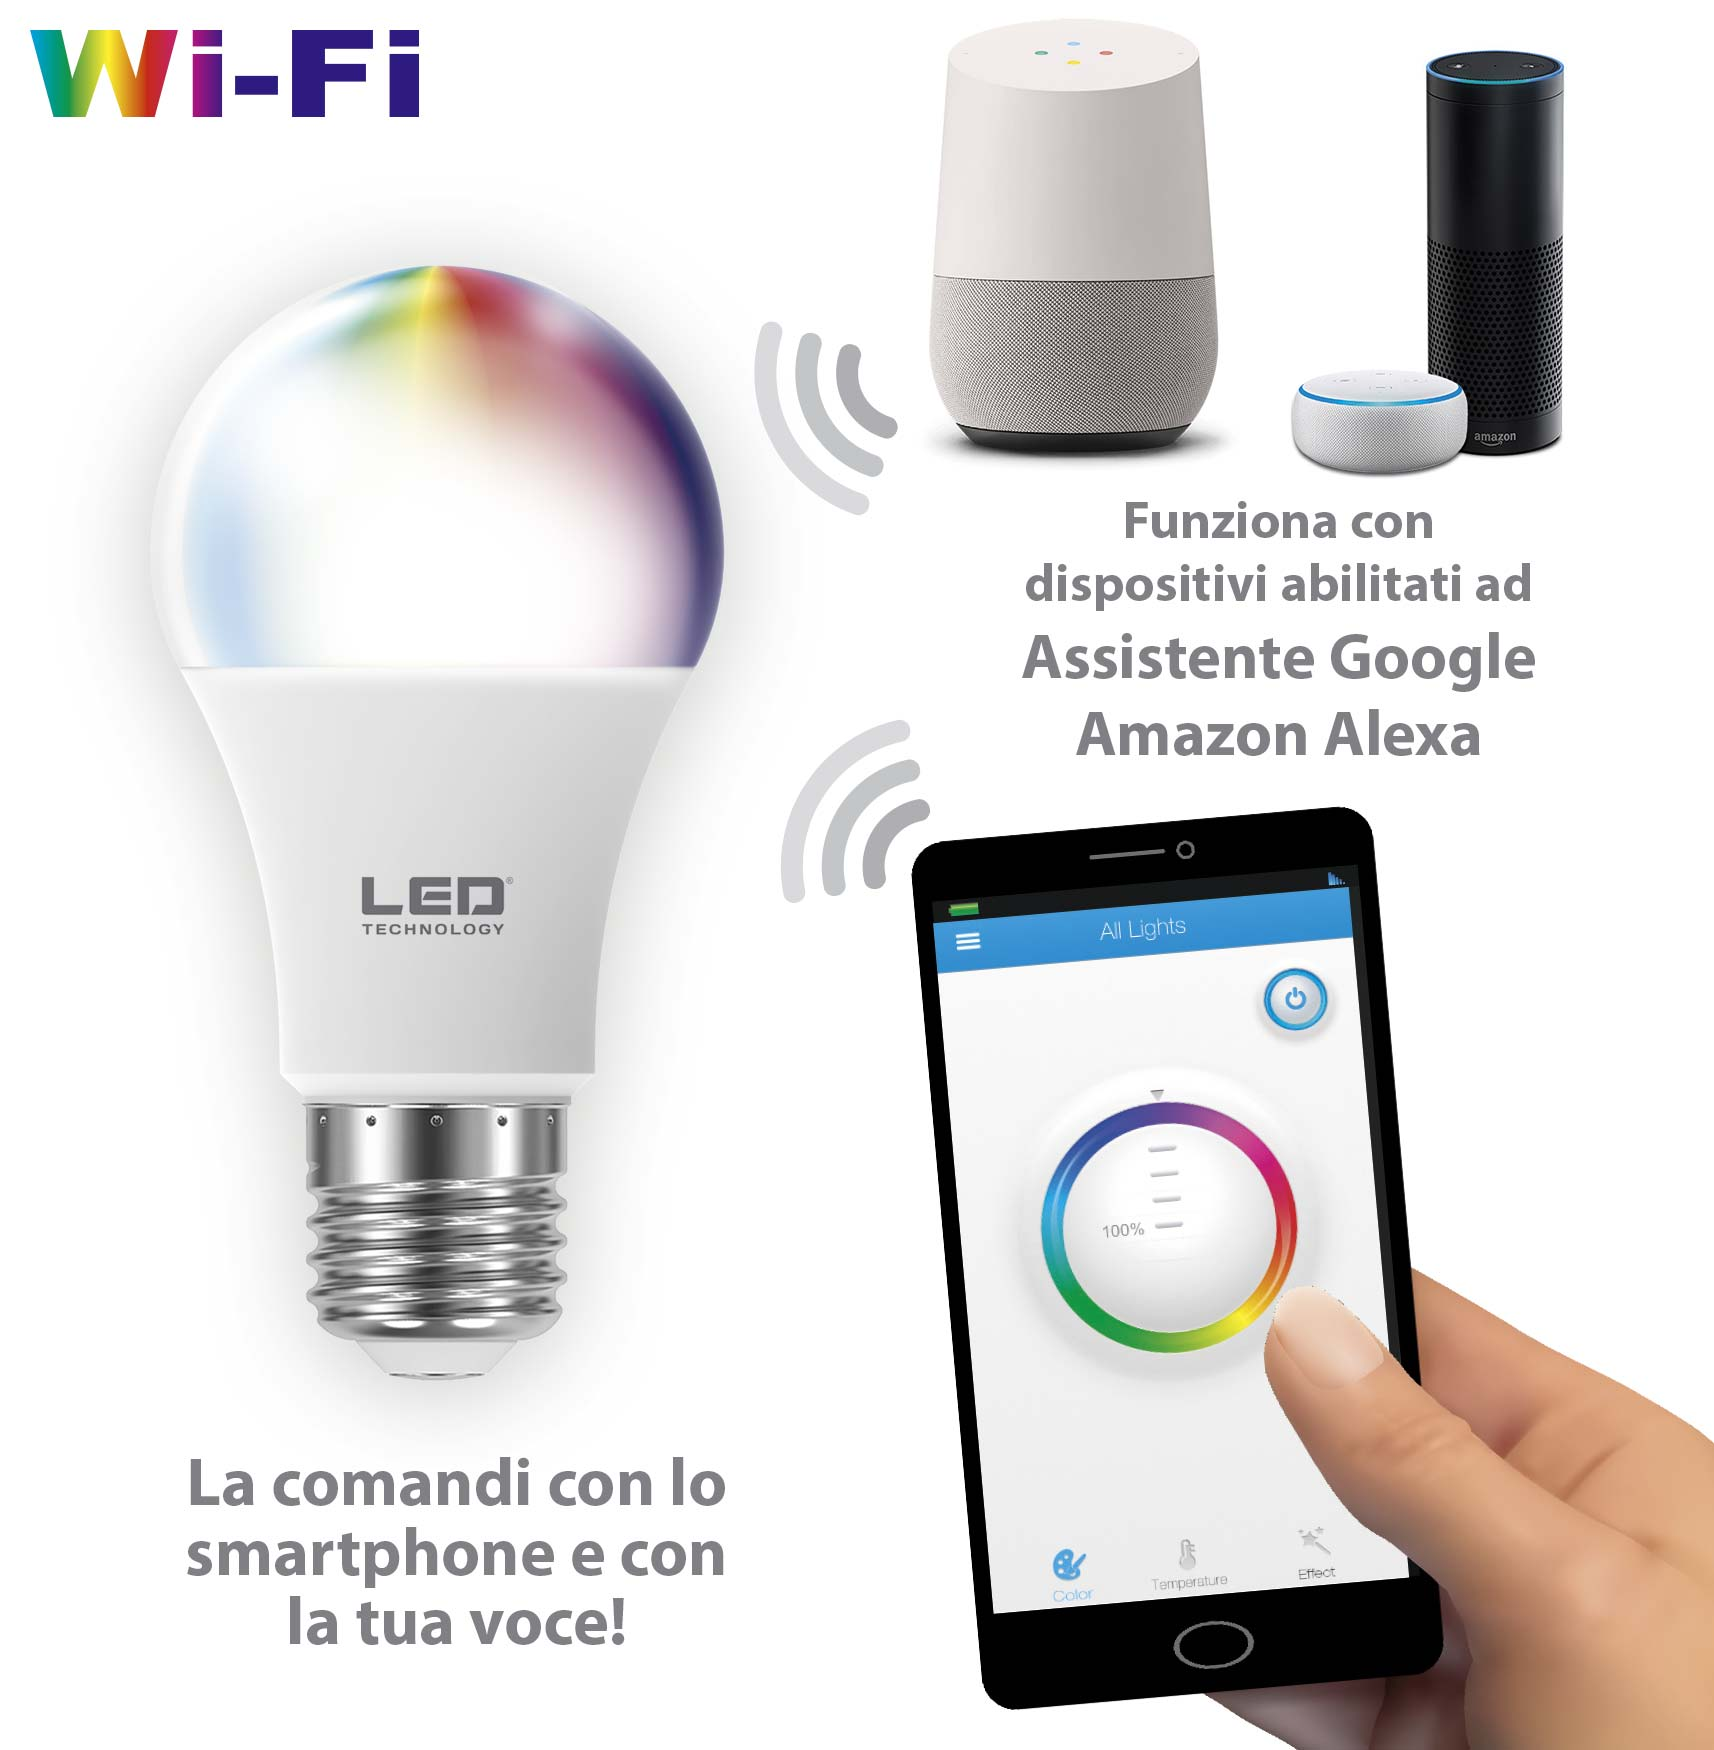 MIDI LIGHT SMART Wi-Fi